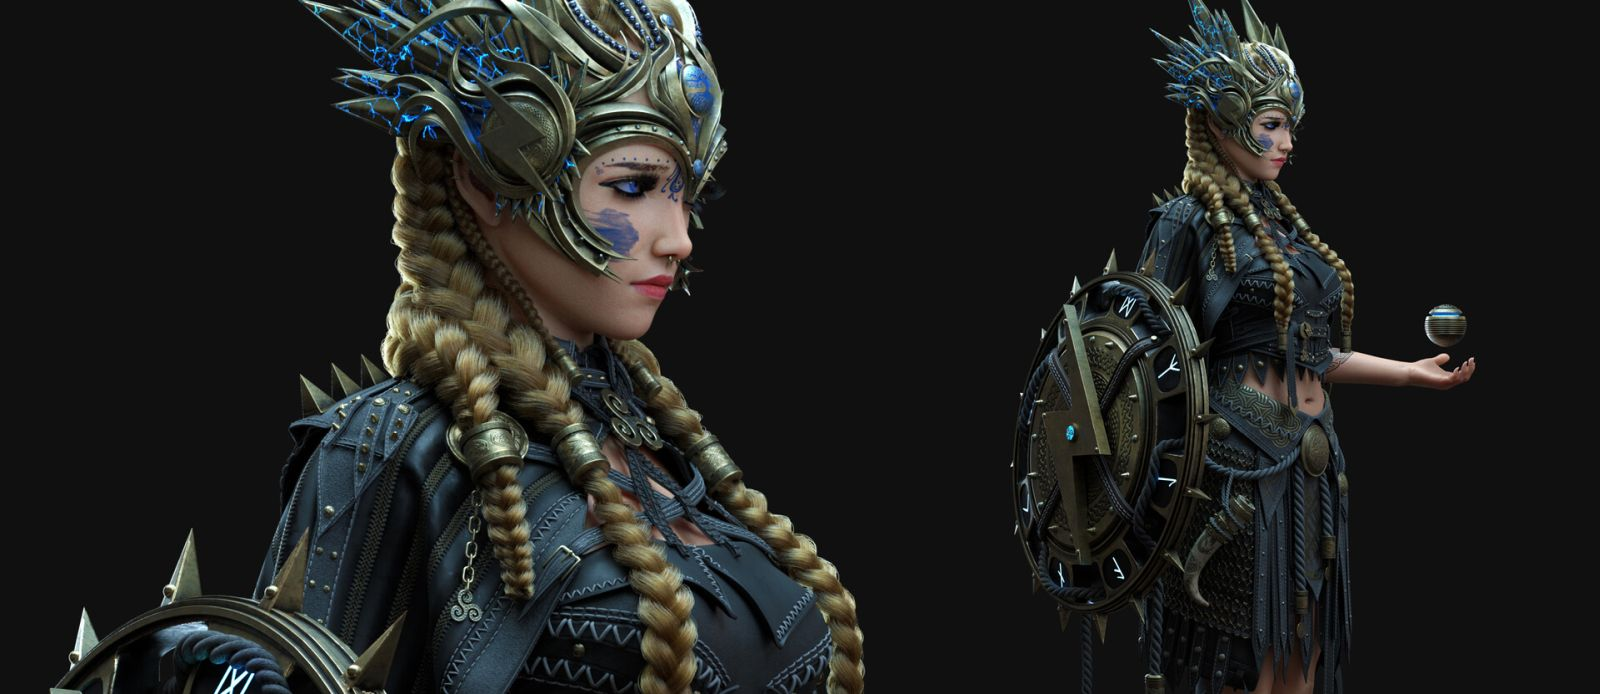 3d model character design valkyrie